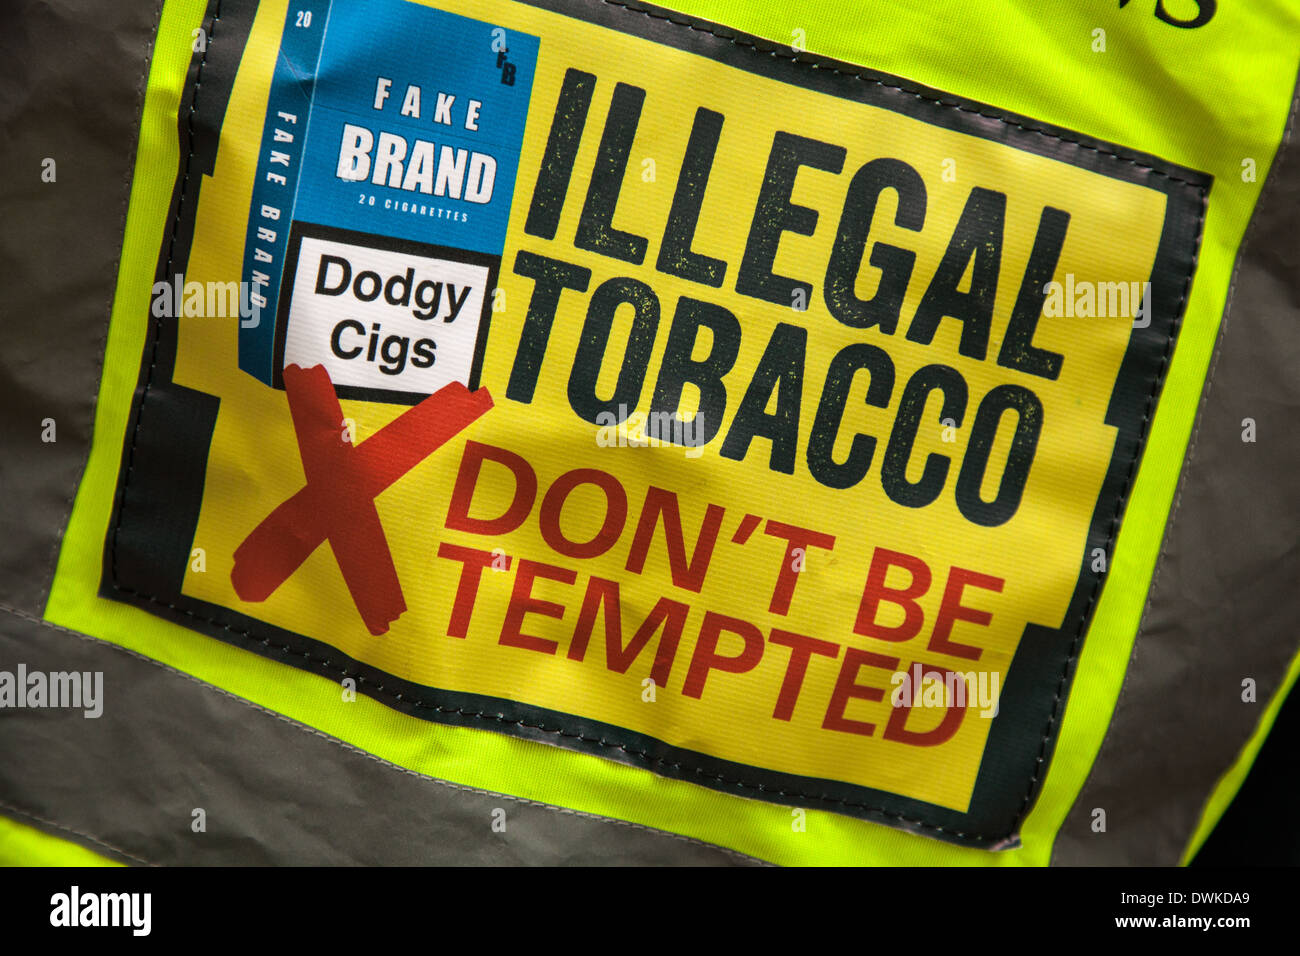 Illegal Tobacco - Don' t be tempted _ Hi-vis shirt to deter purchase of illegal imports_Dodgy cigs, Manchester City Centre. - Stock Image